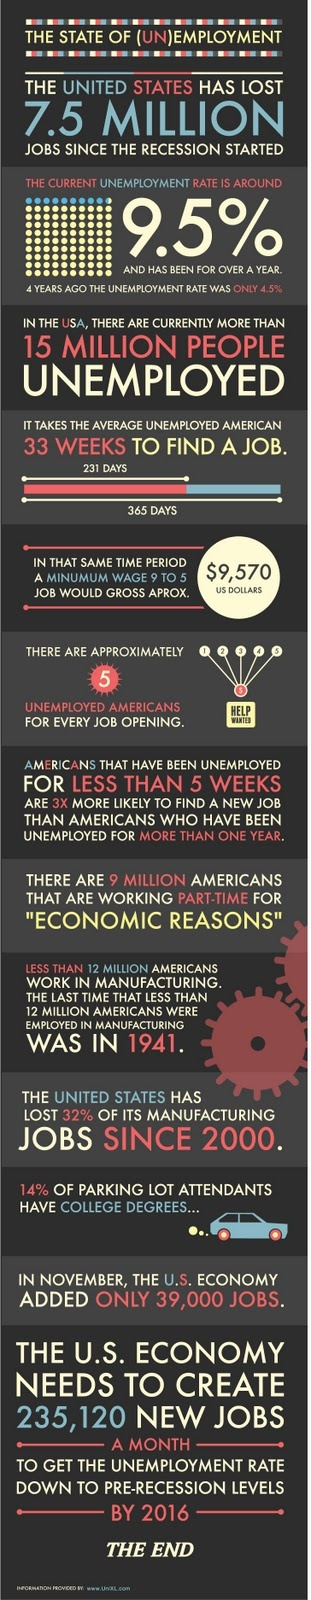 There are 5 unemployed people for every job available in America.      We need job creation.